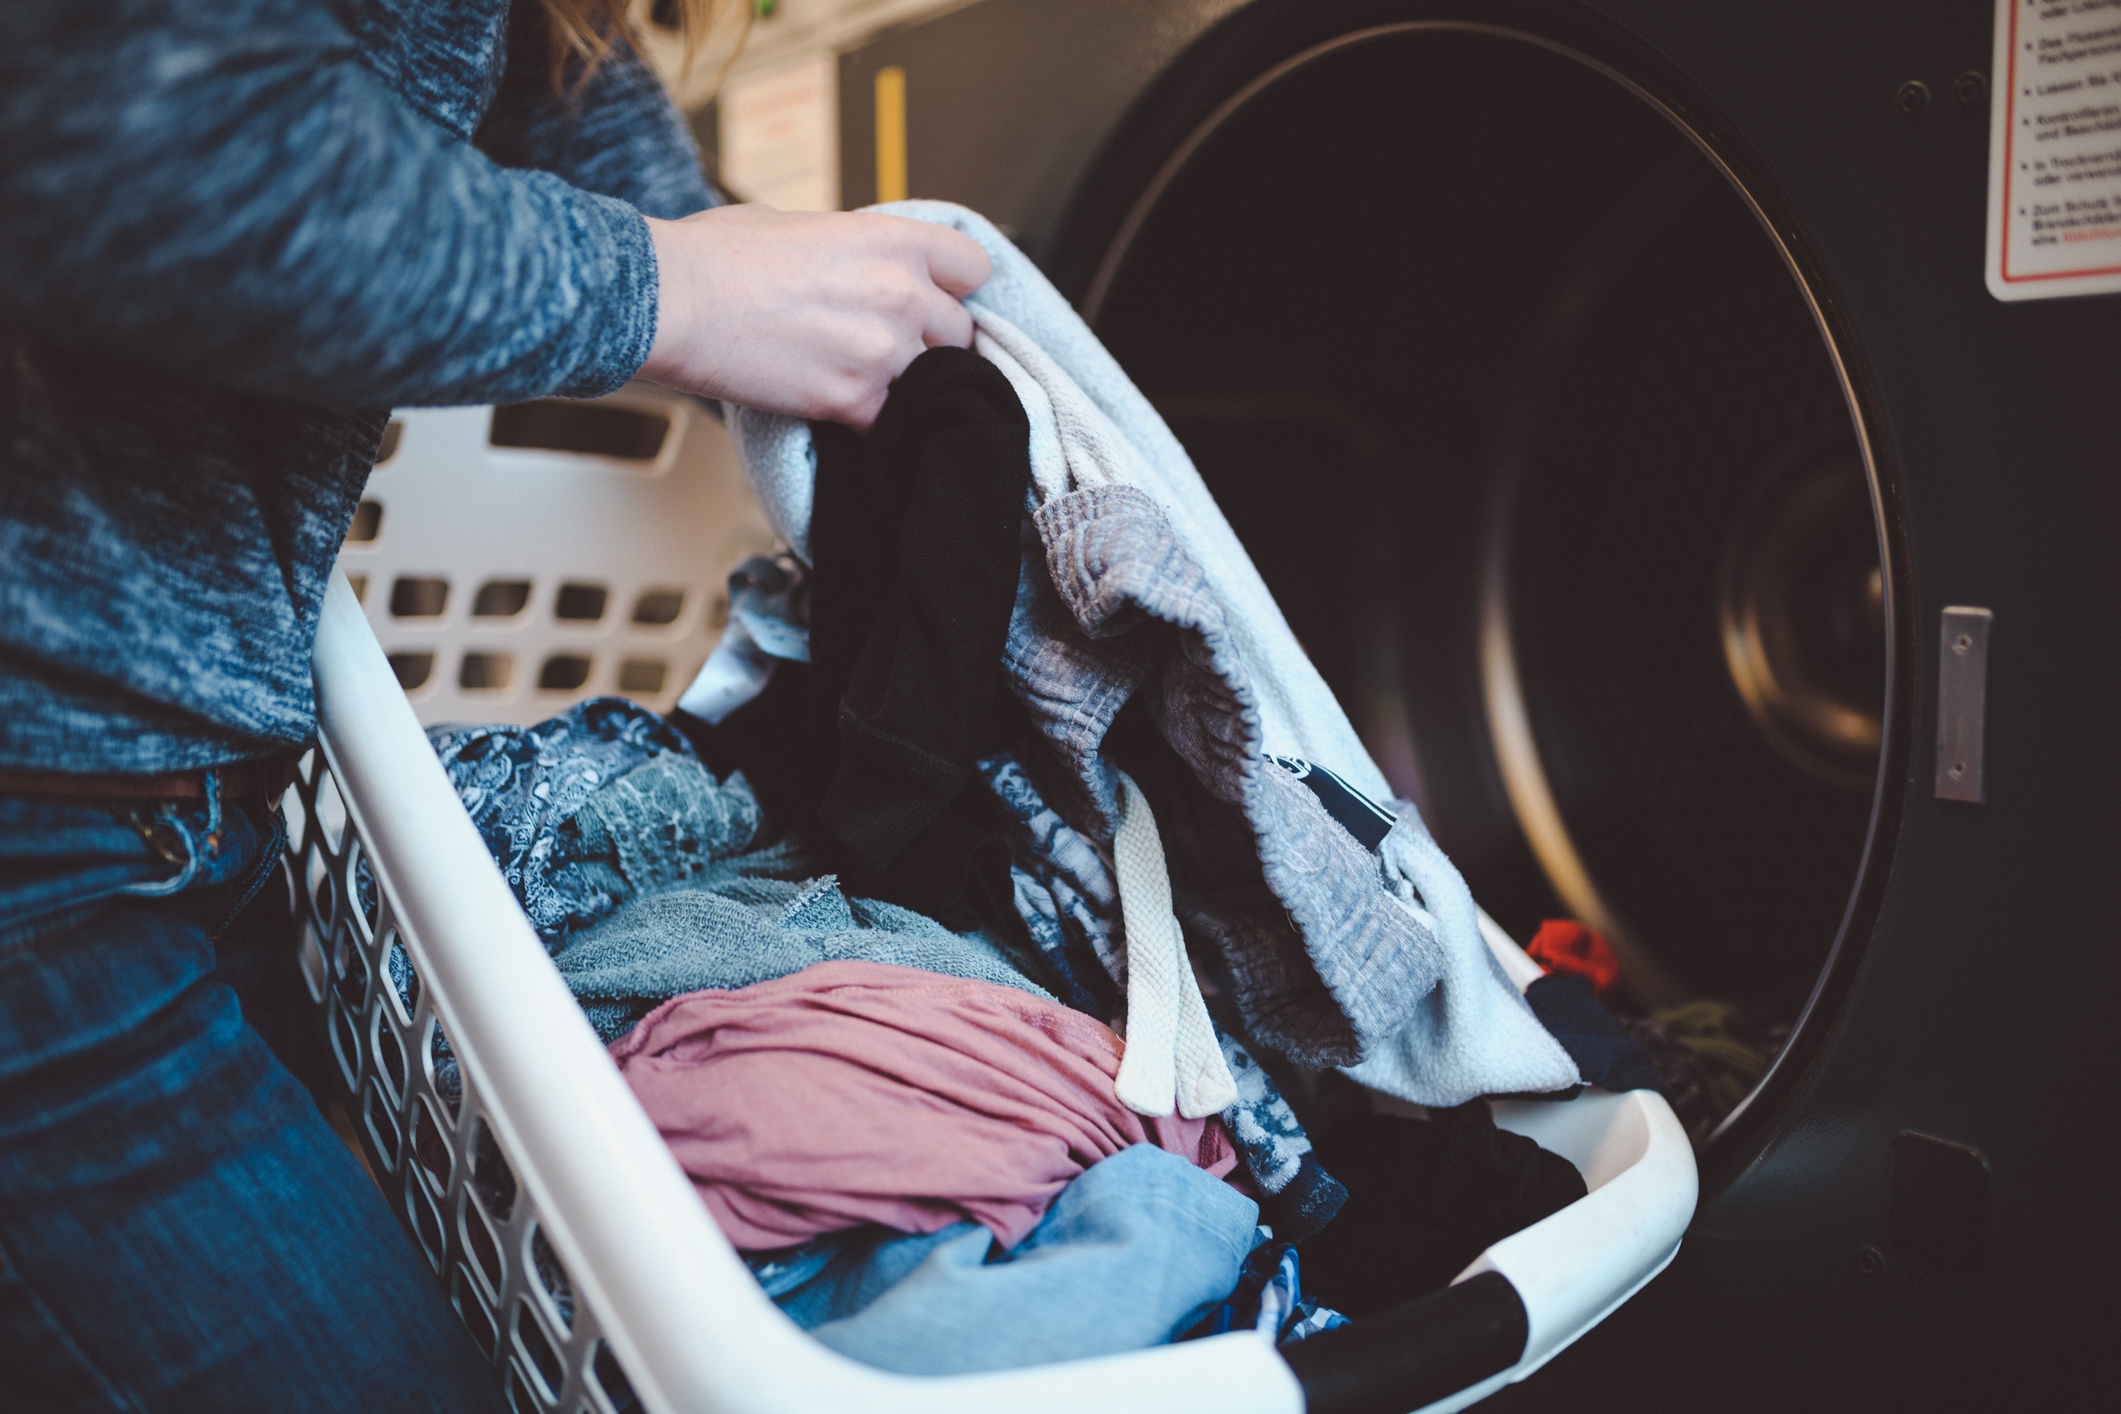 Clothes Washer Image